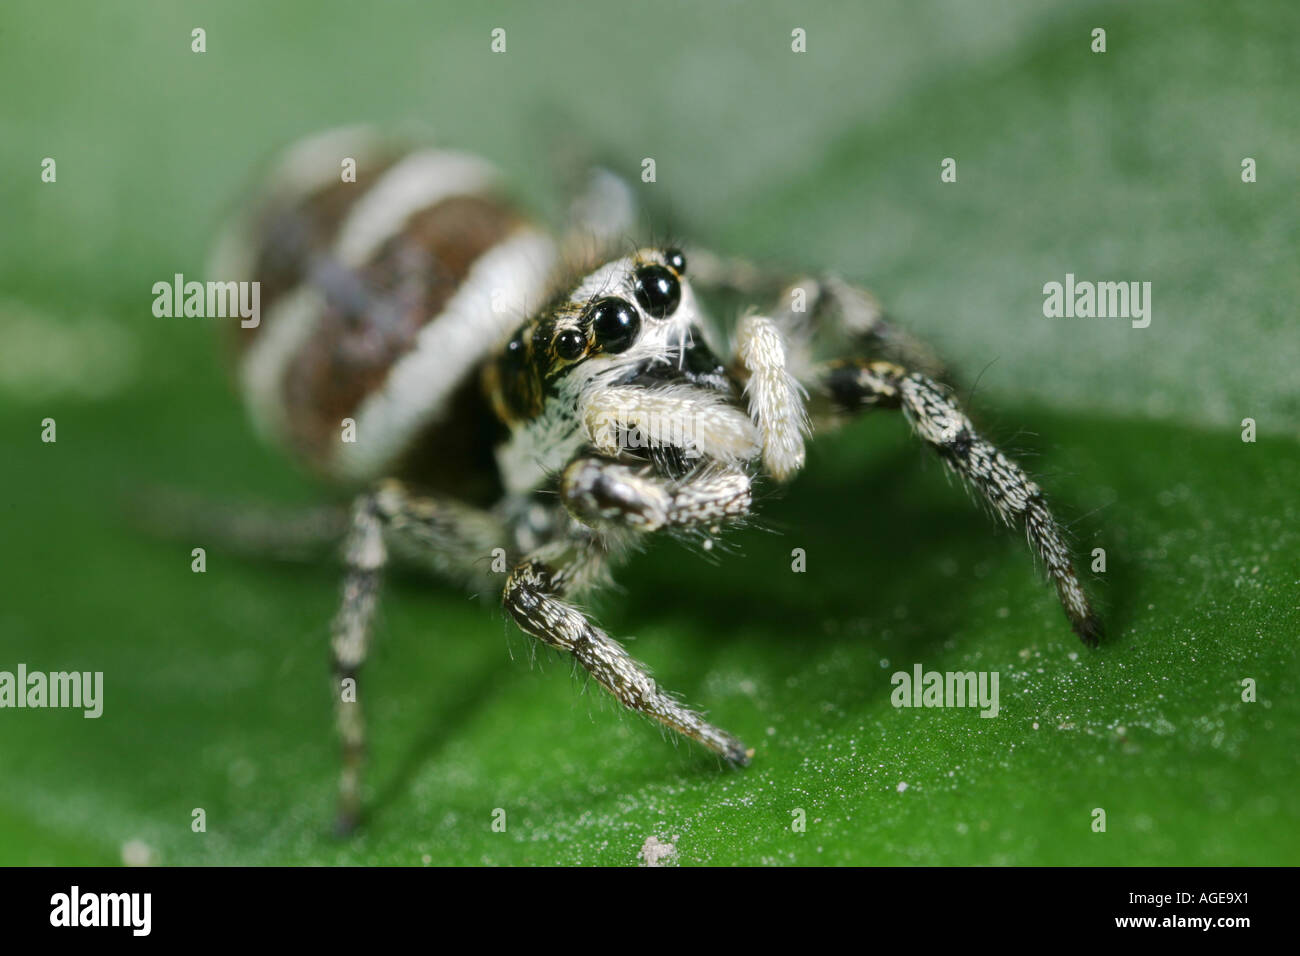 Zebra spider, Salticus Scenicus, sitting on a leaf. The Zebra spider is a small jumping spider. Stock Photo